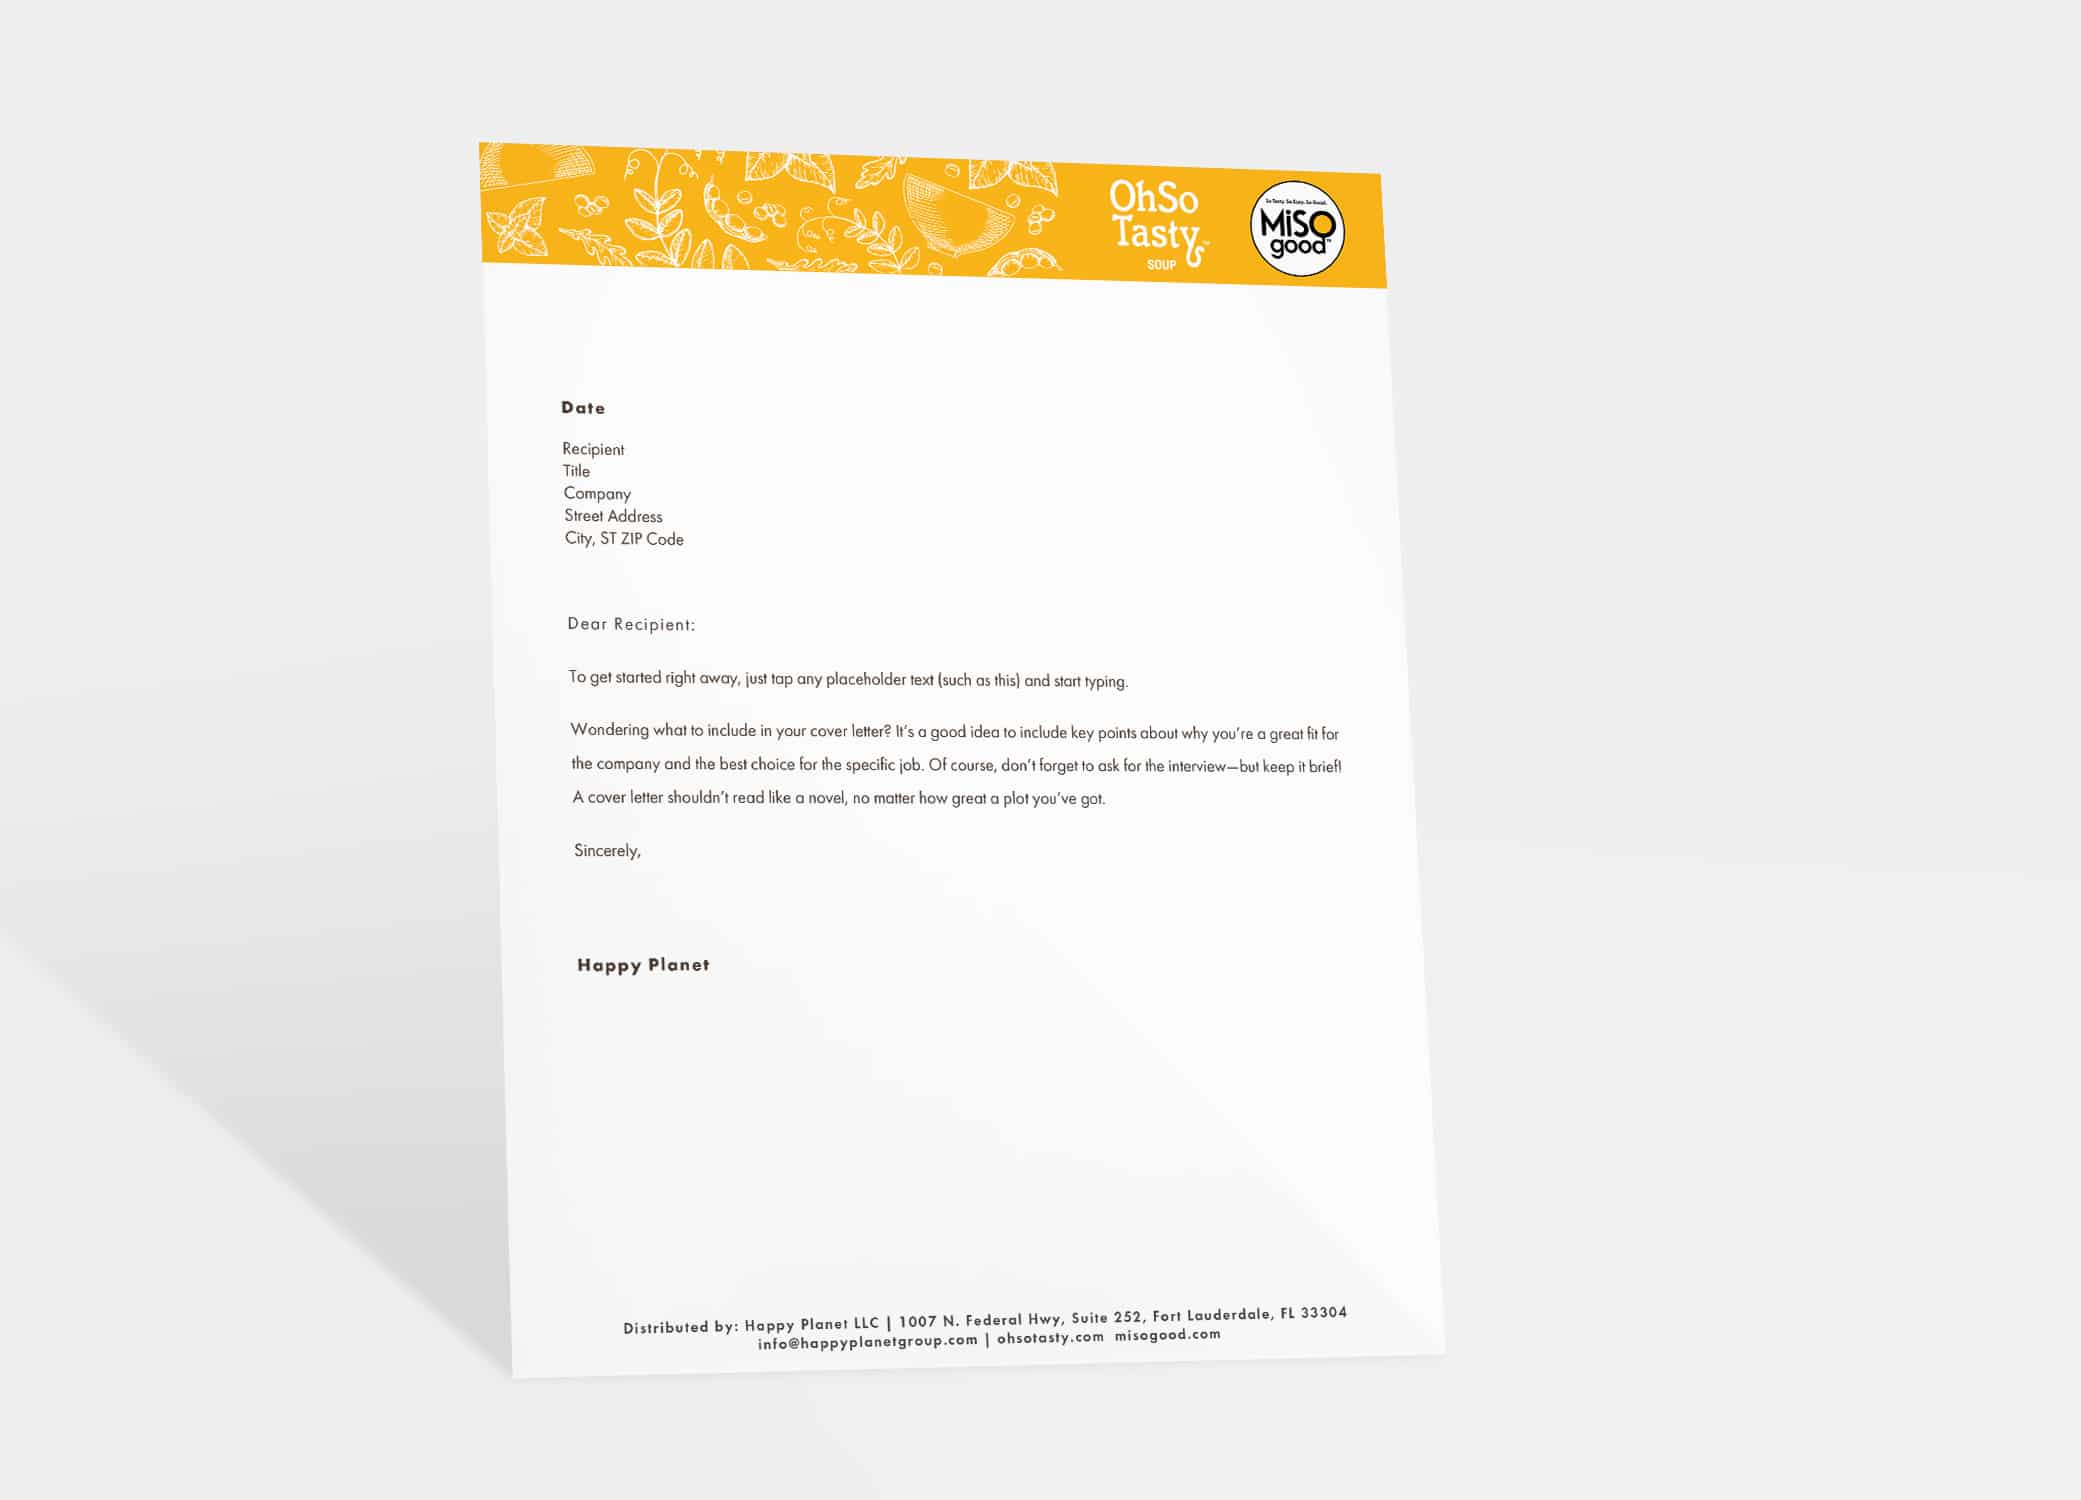 MiSOgood letterhead design with hand-drawn graphics and logo against a vibrant orange background.